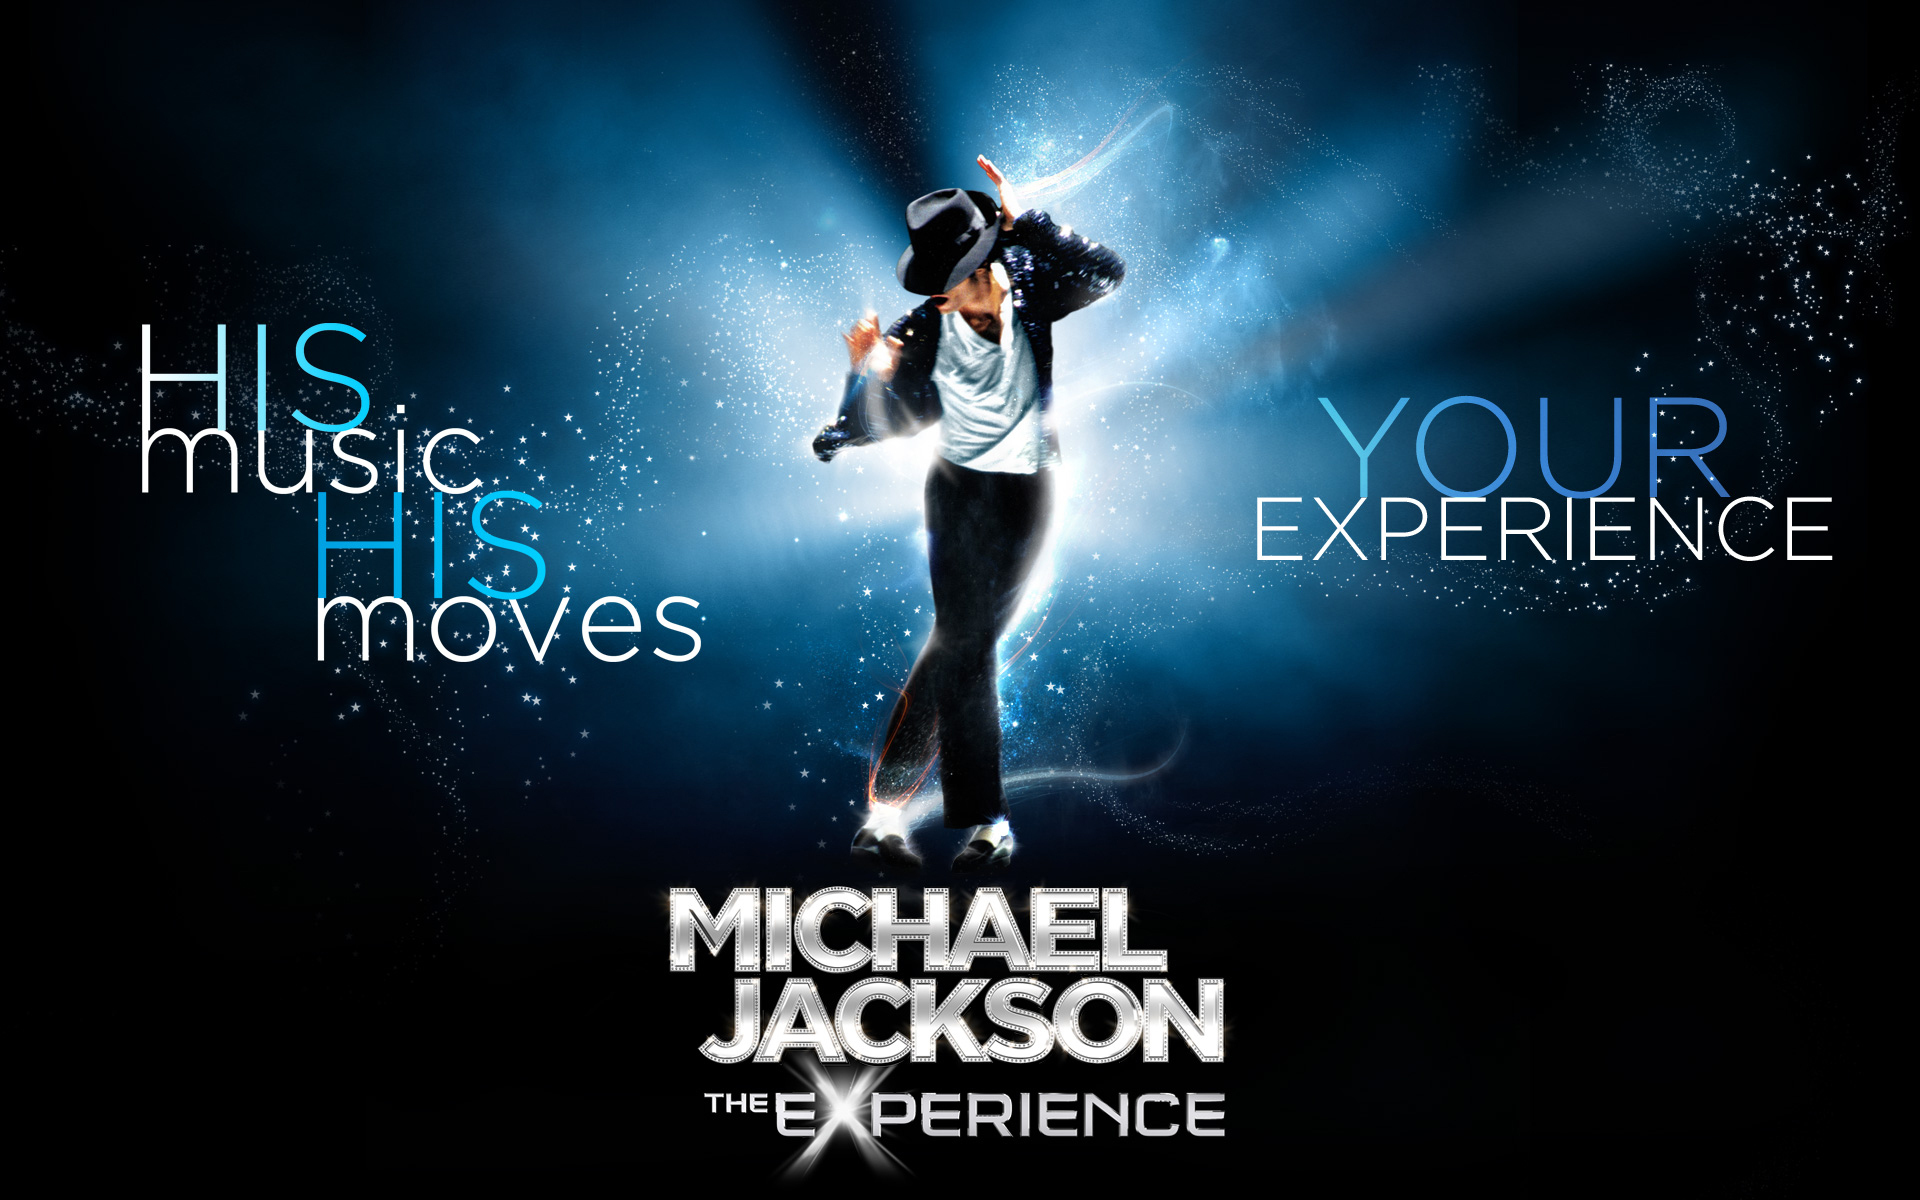 Michael Jackson Wallpapers HD A31